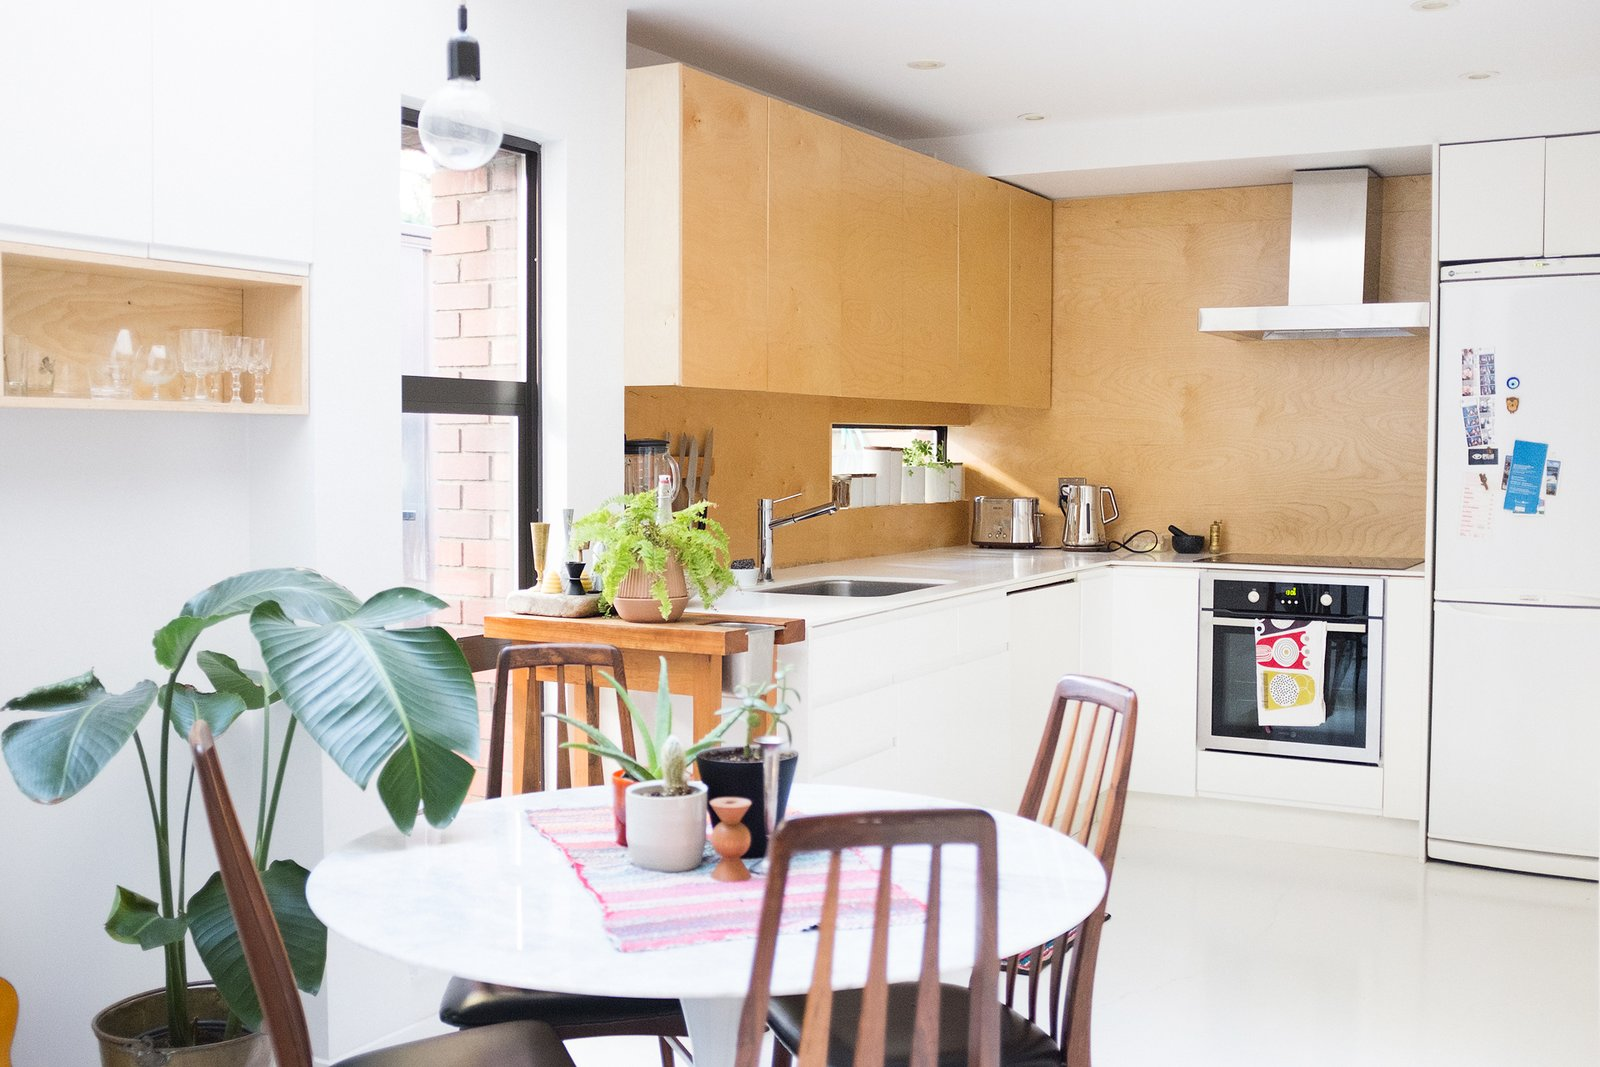 Kitchen, Concrete Floor, Wood Backsplashe, Range Hood, White Cabinet, and Wood Cabinet The open-plan kitchen is modernized with birch plywood cabinets, corian countertops and space-efficient appliances.  Photo 6 of 9 in A Revitalized Townhouse that Owes Everything to Angles